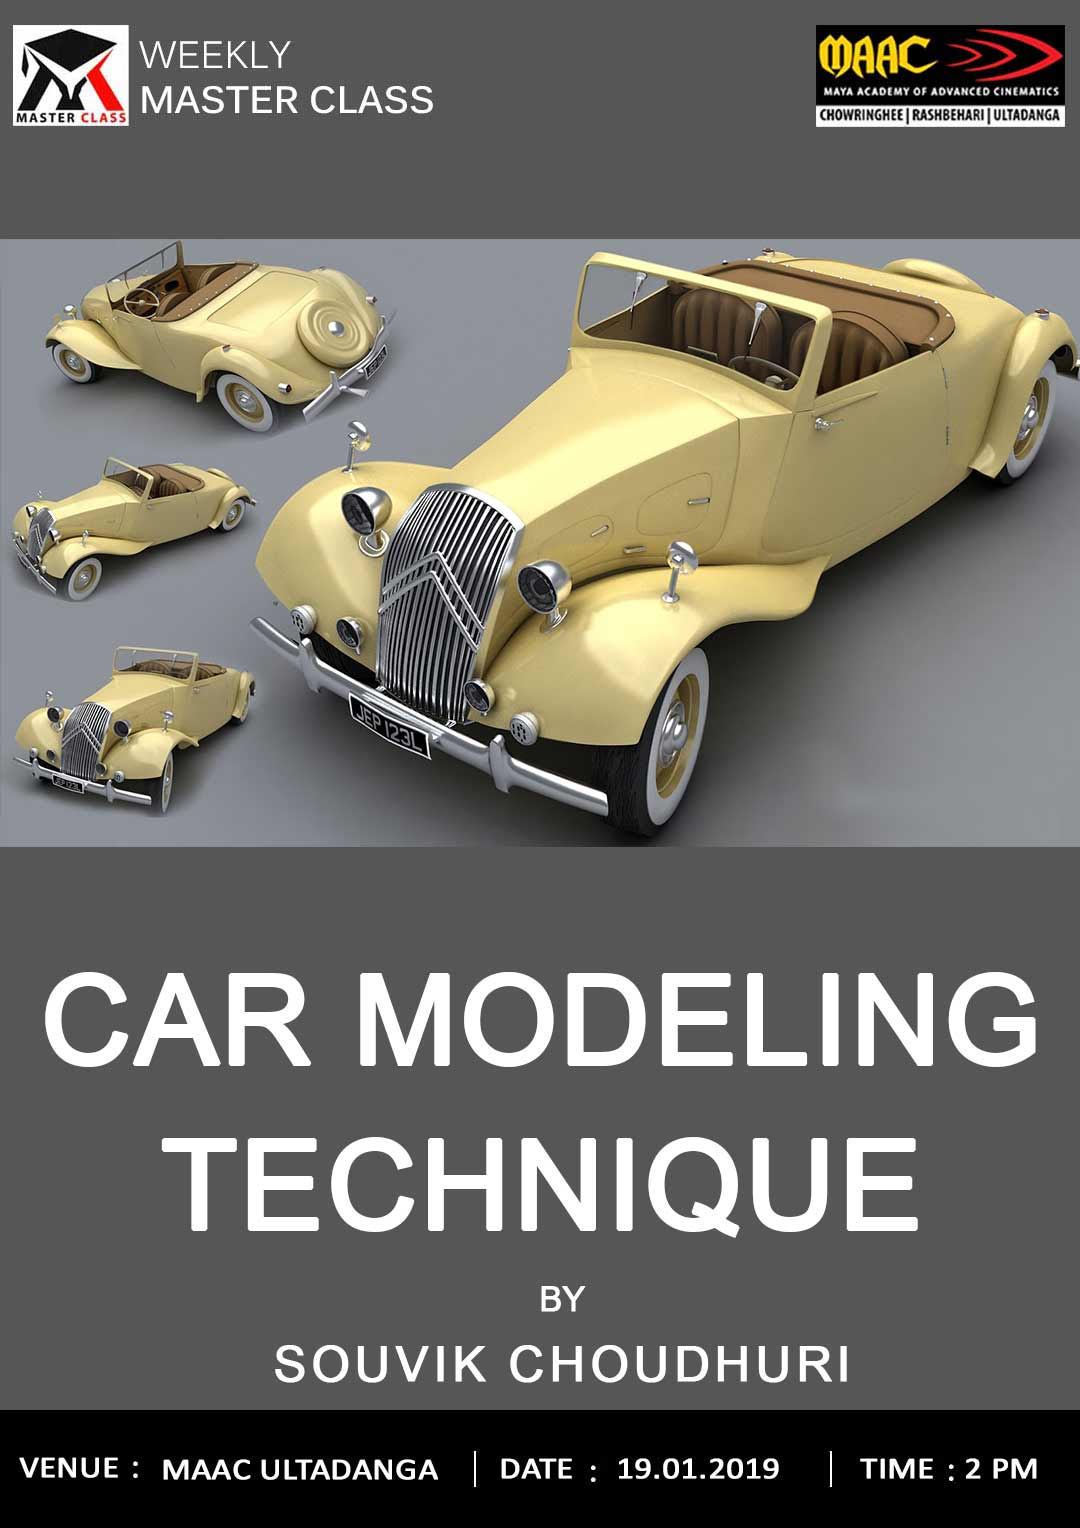 Weekly Master Class on Car Modeling Technique